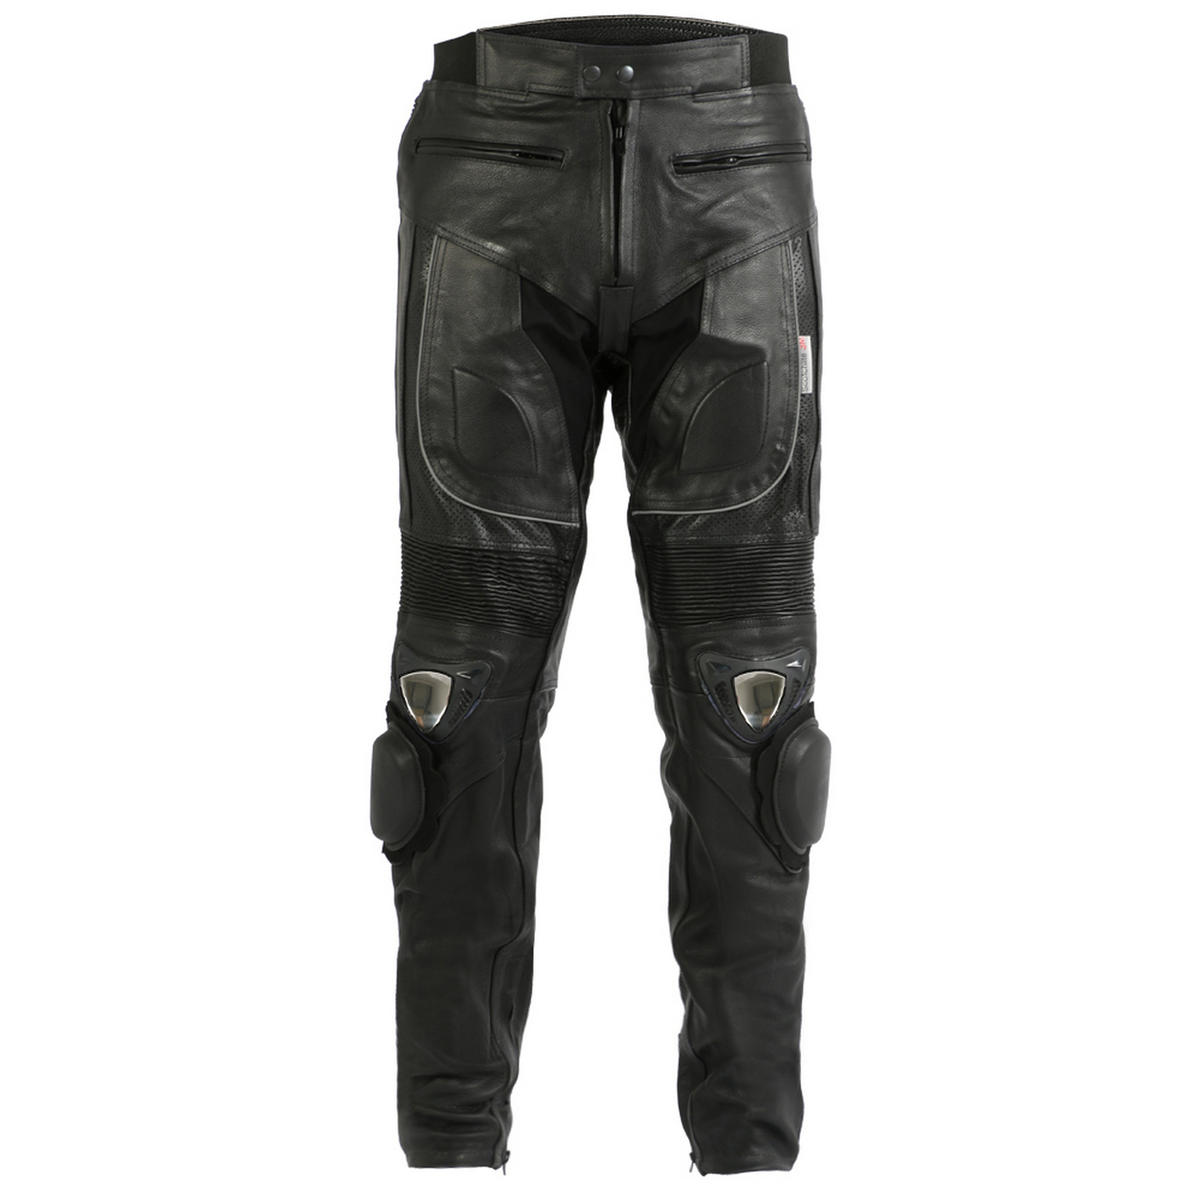 Turin Mens Leather Trousers With Metal Sliders